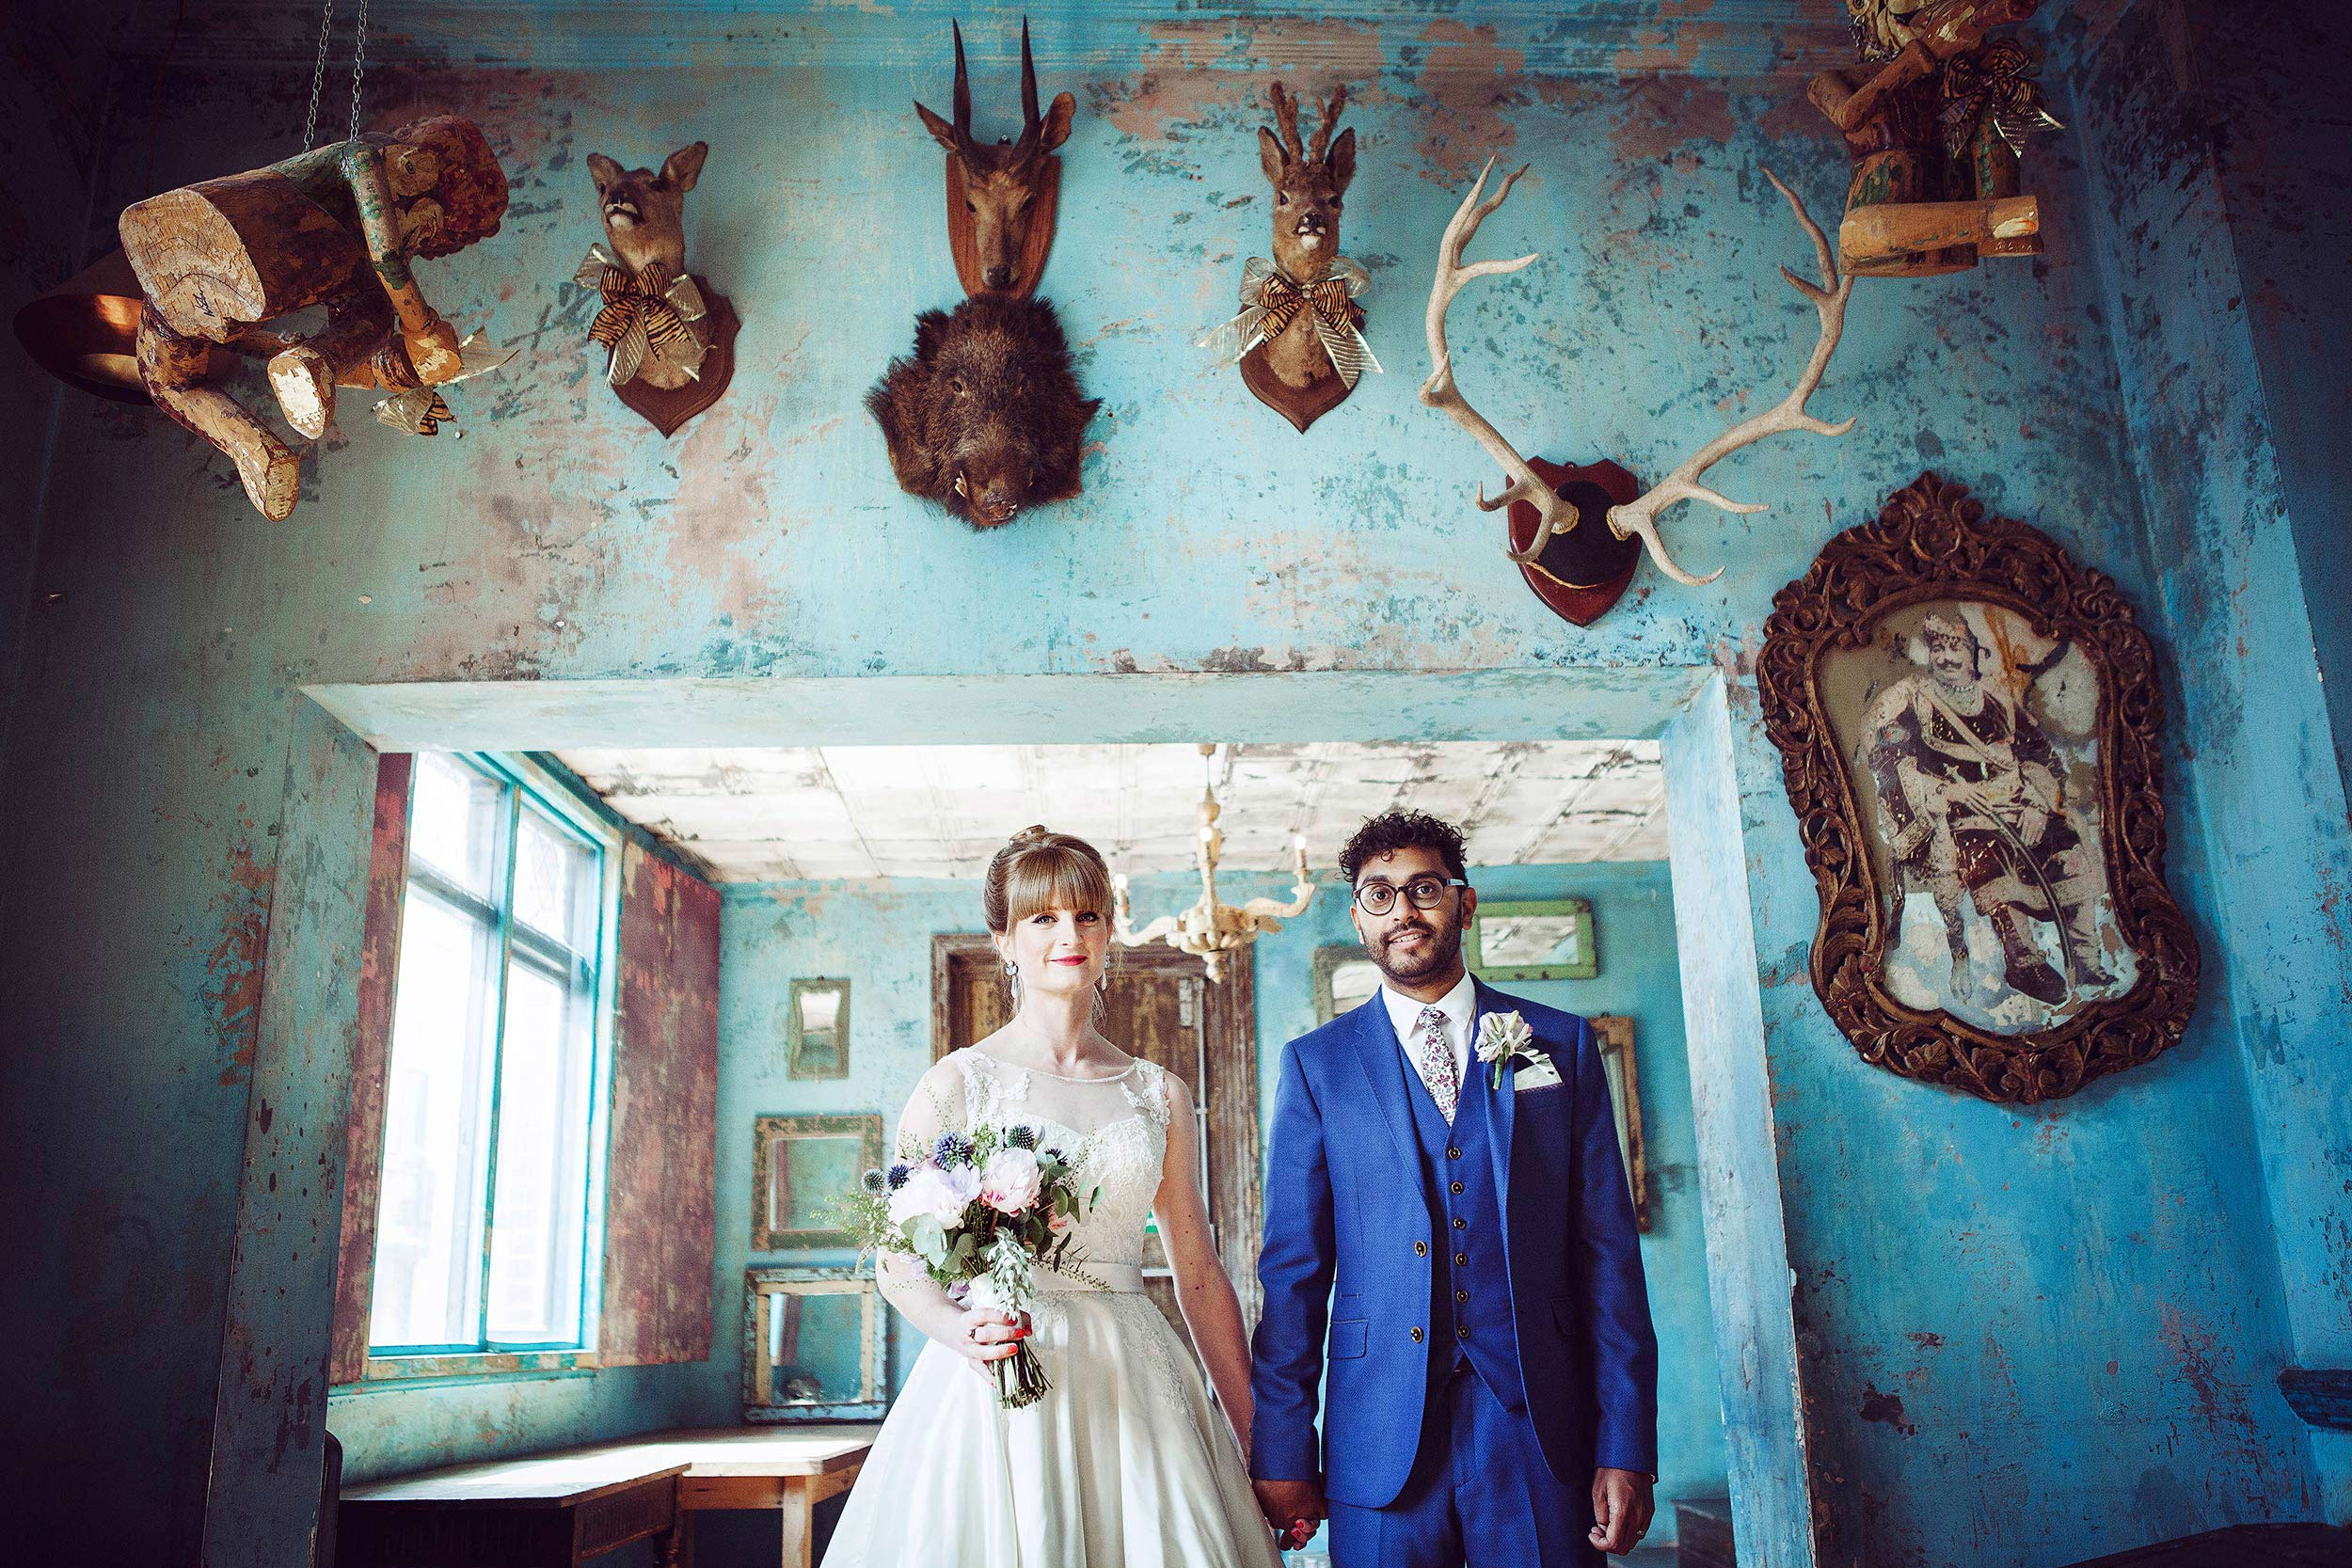 Alternative wedding photography at The Paradise by Way of Kensal Green London